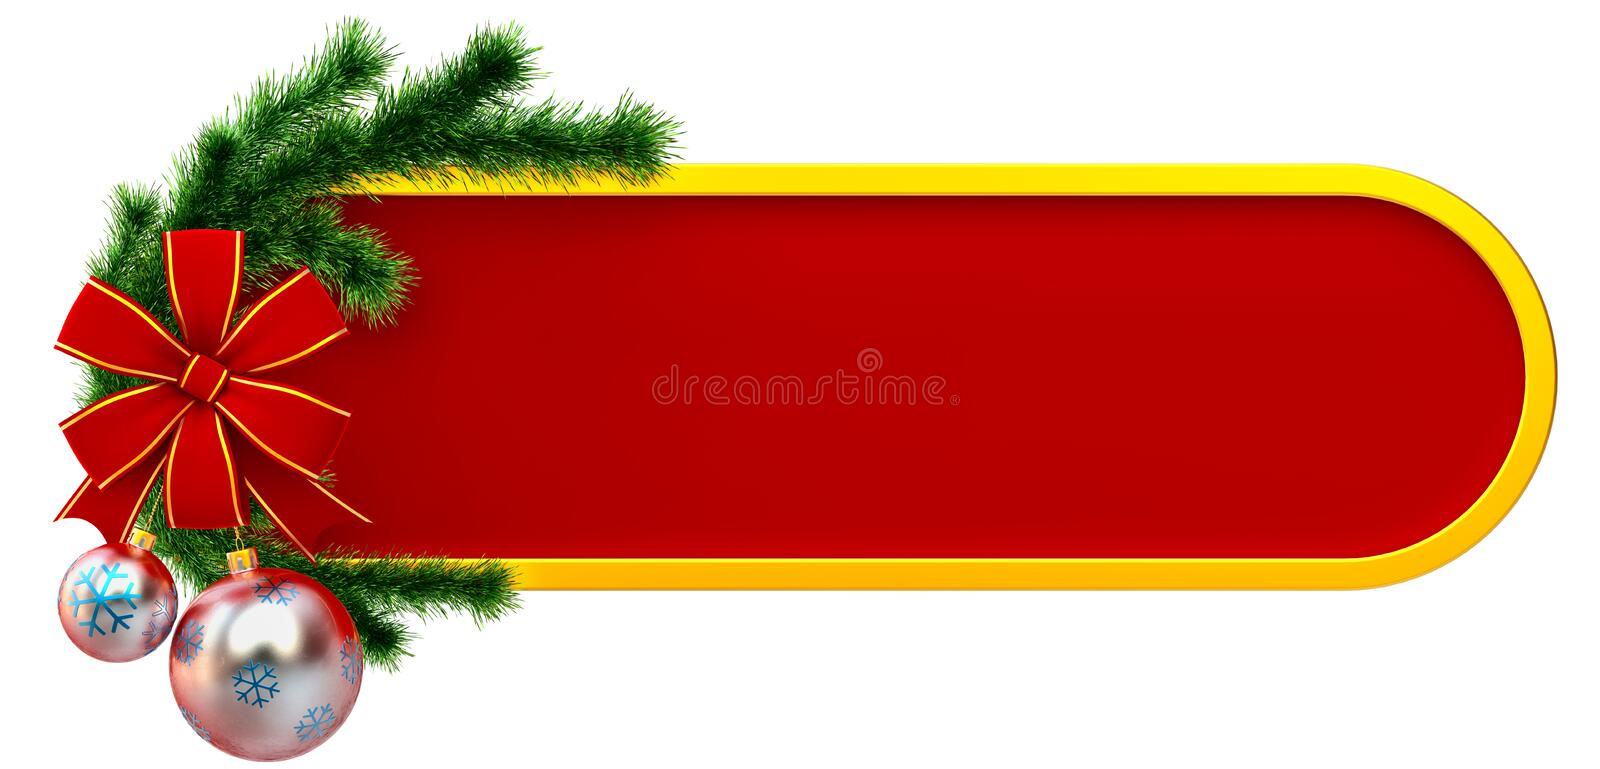 Christmas frame with balls and red bow royalty free illustration